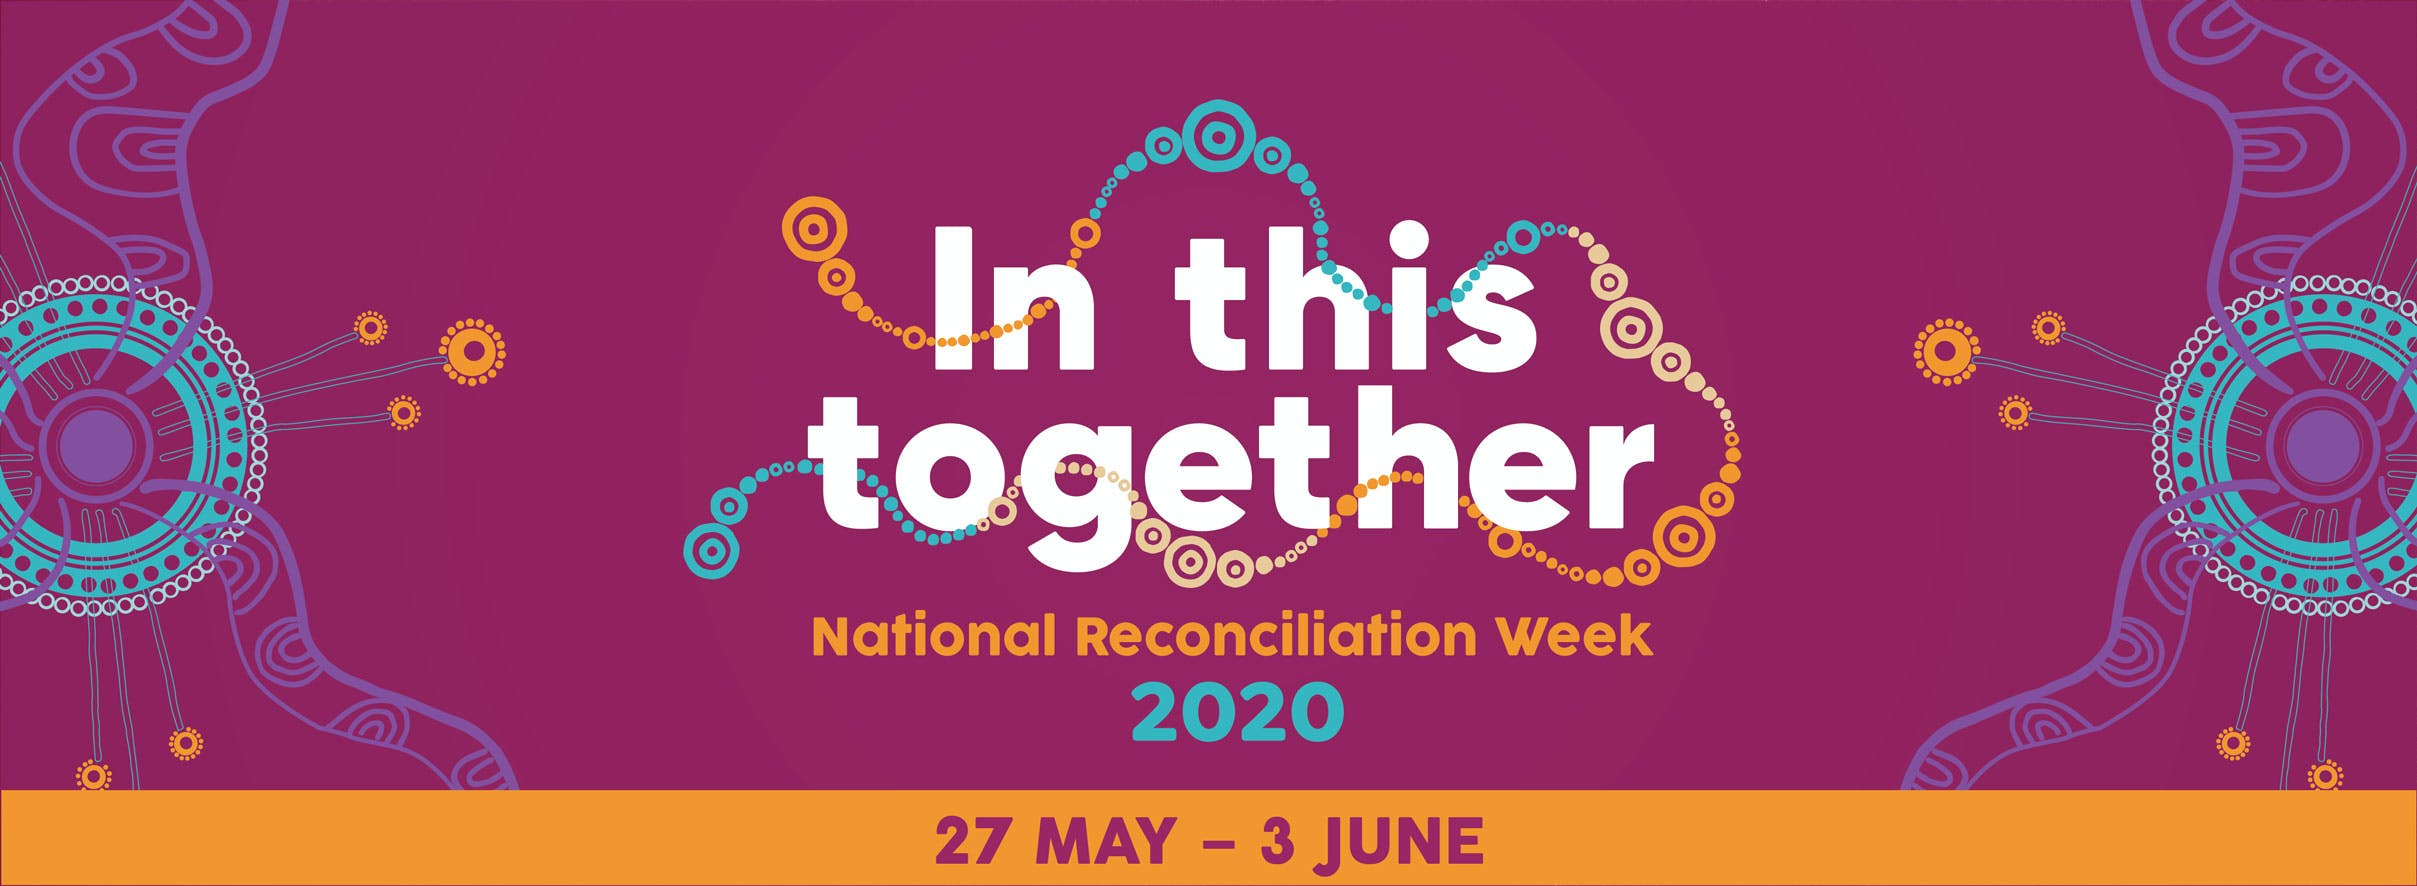 For National Reconciliation Week, we're #InThisTogether2020